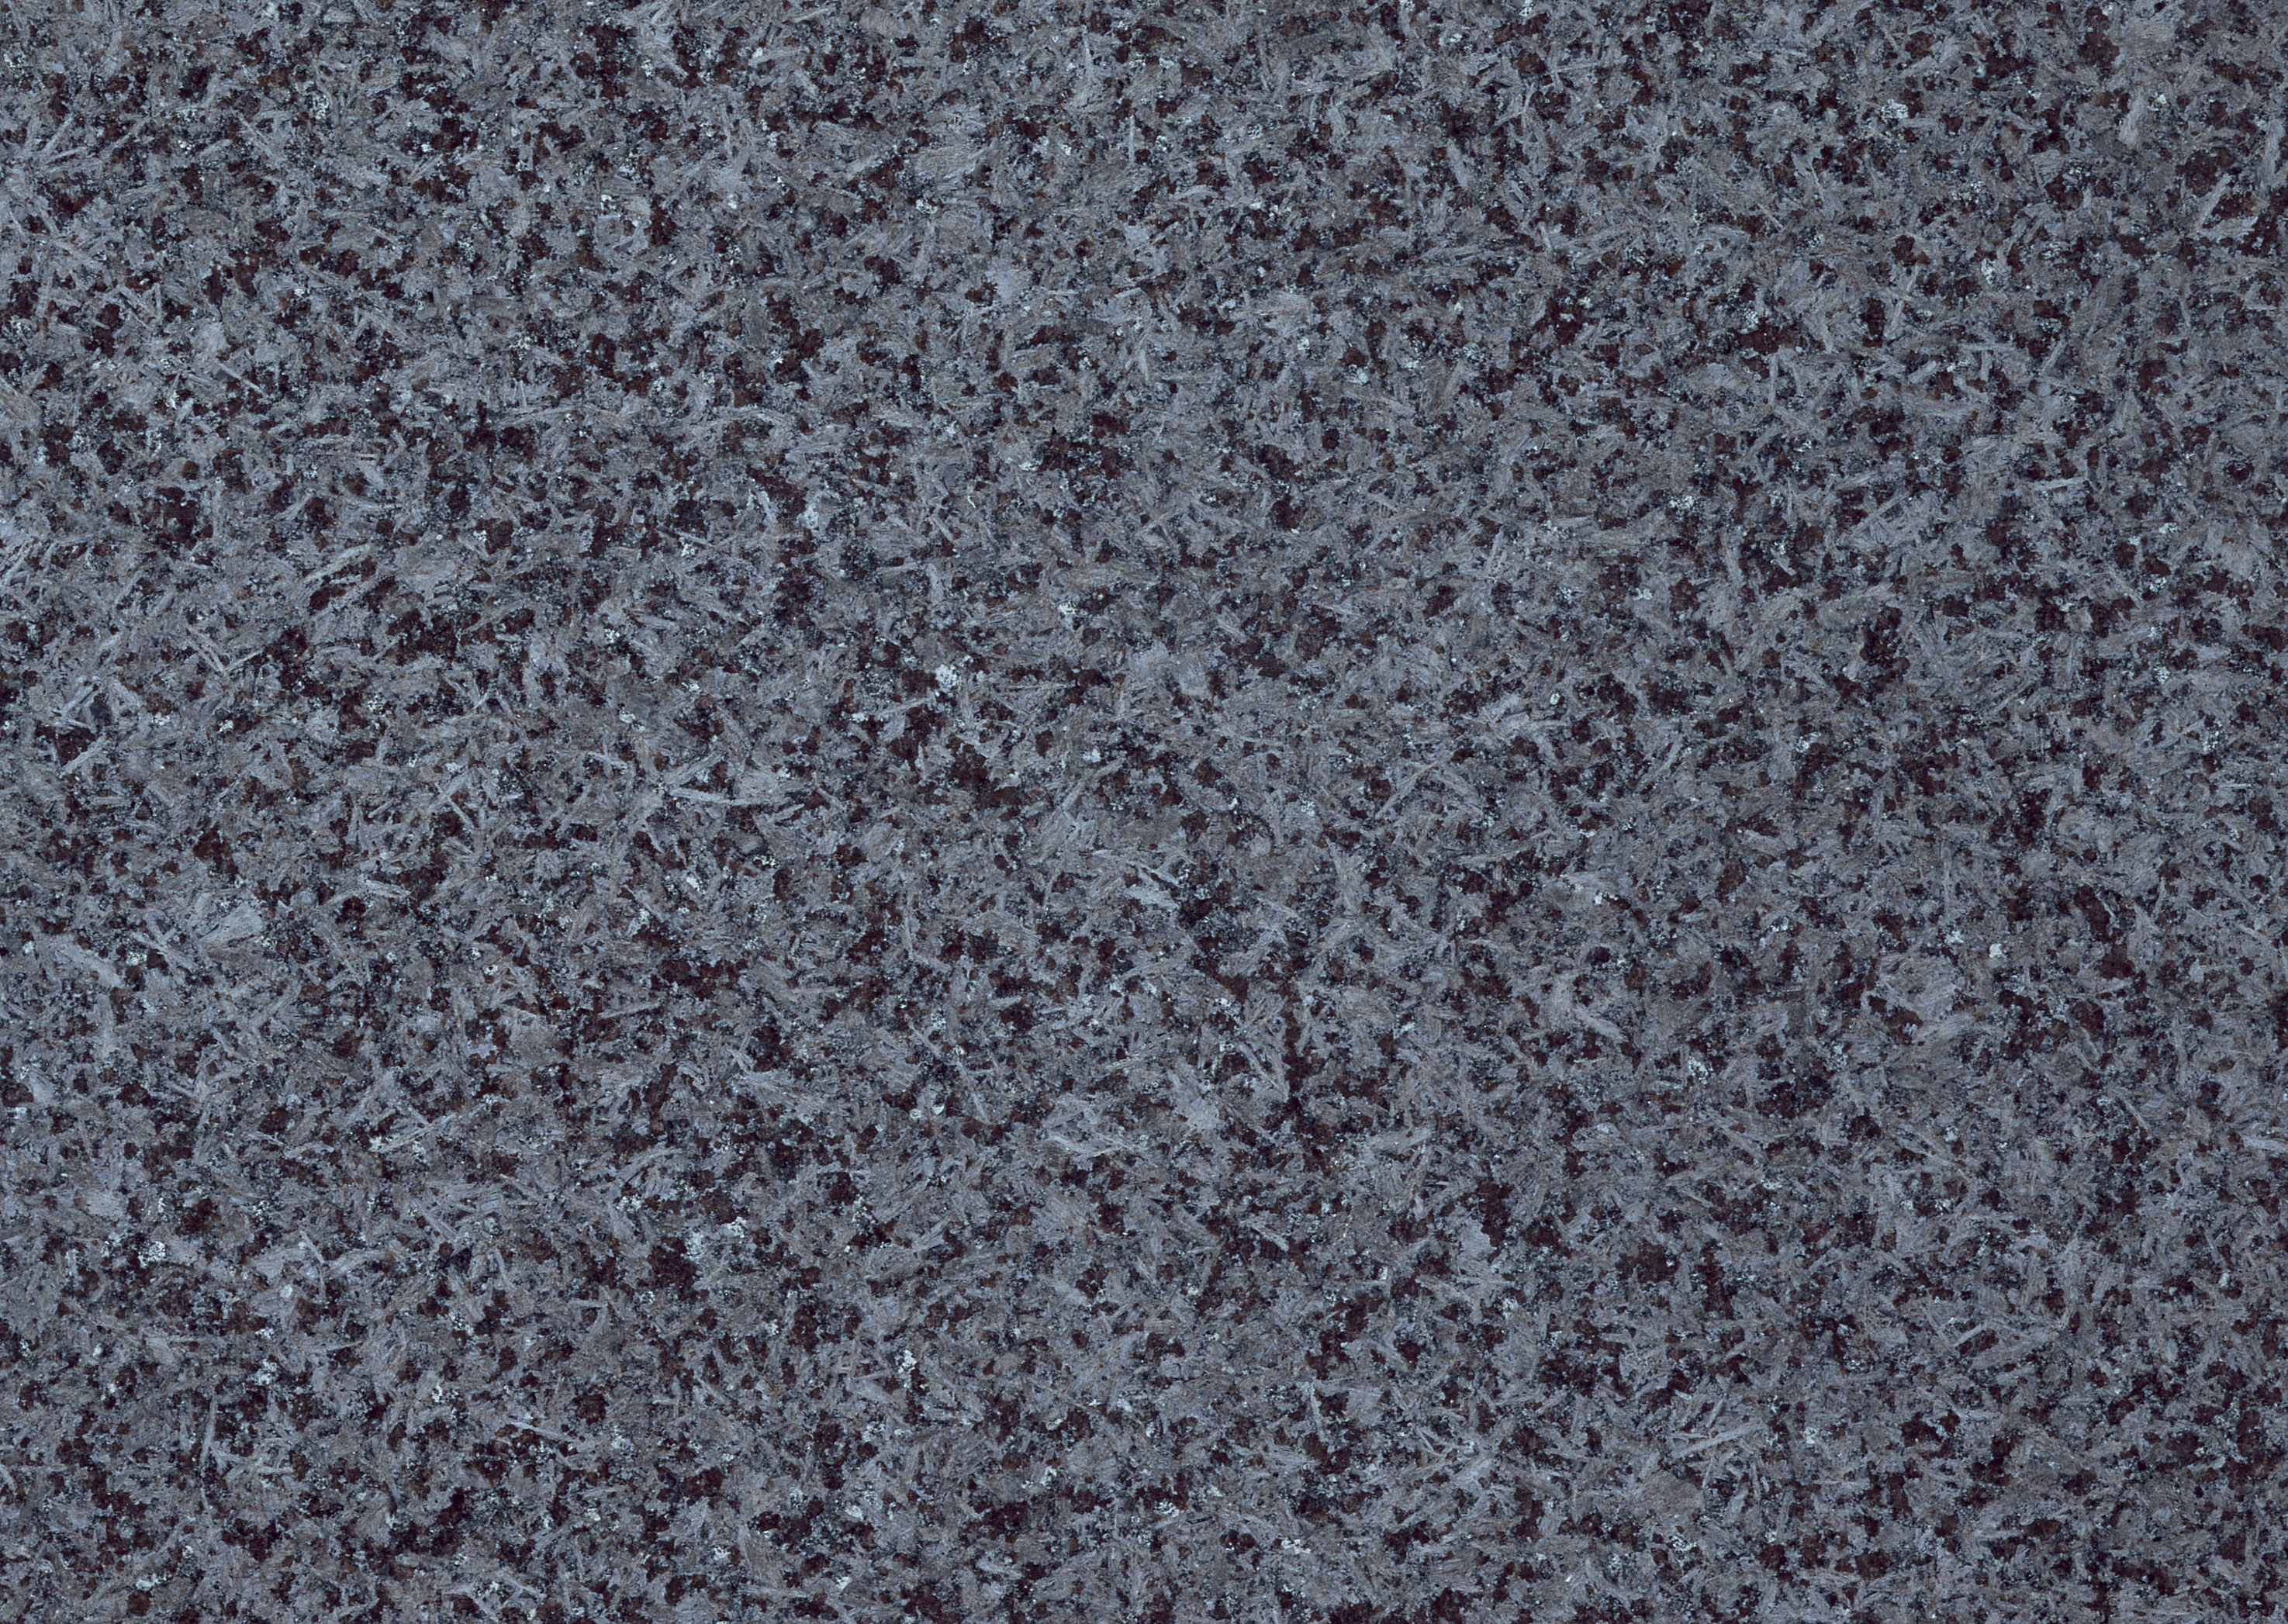 Home ? Materials ? Granite ? Granite stone texture background image